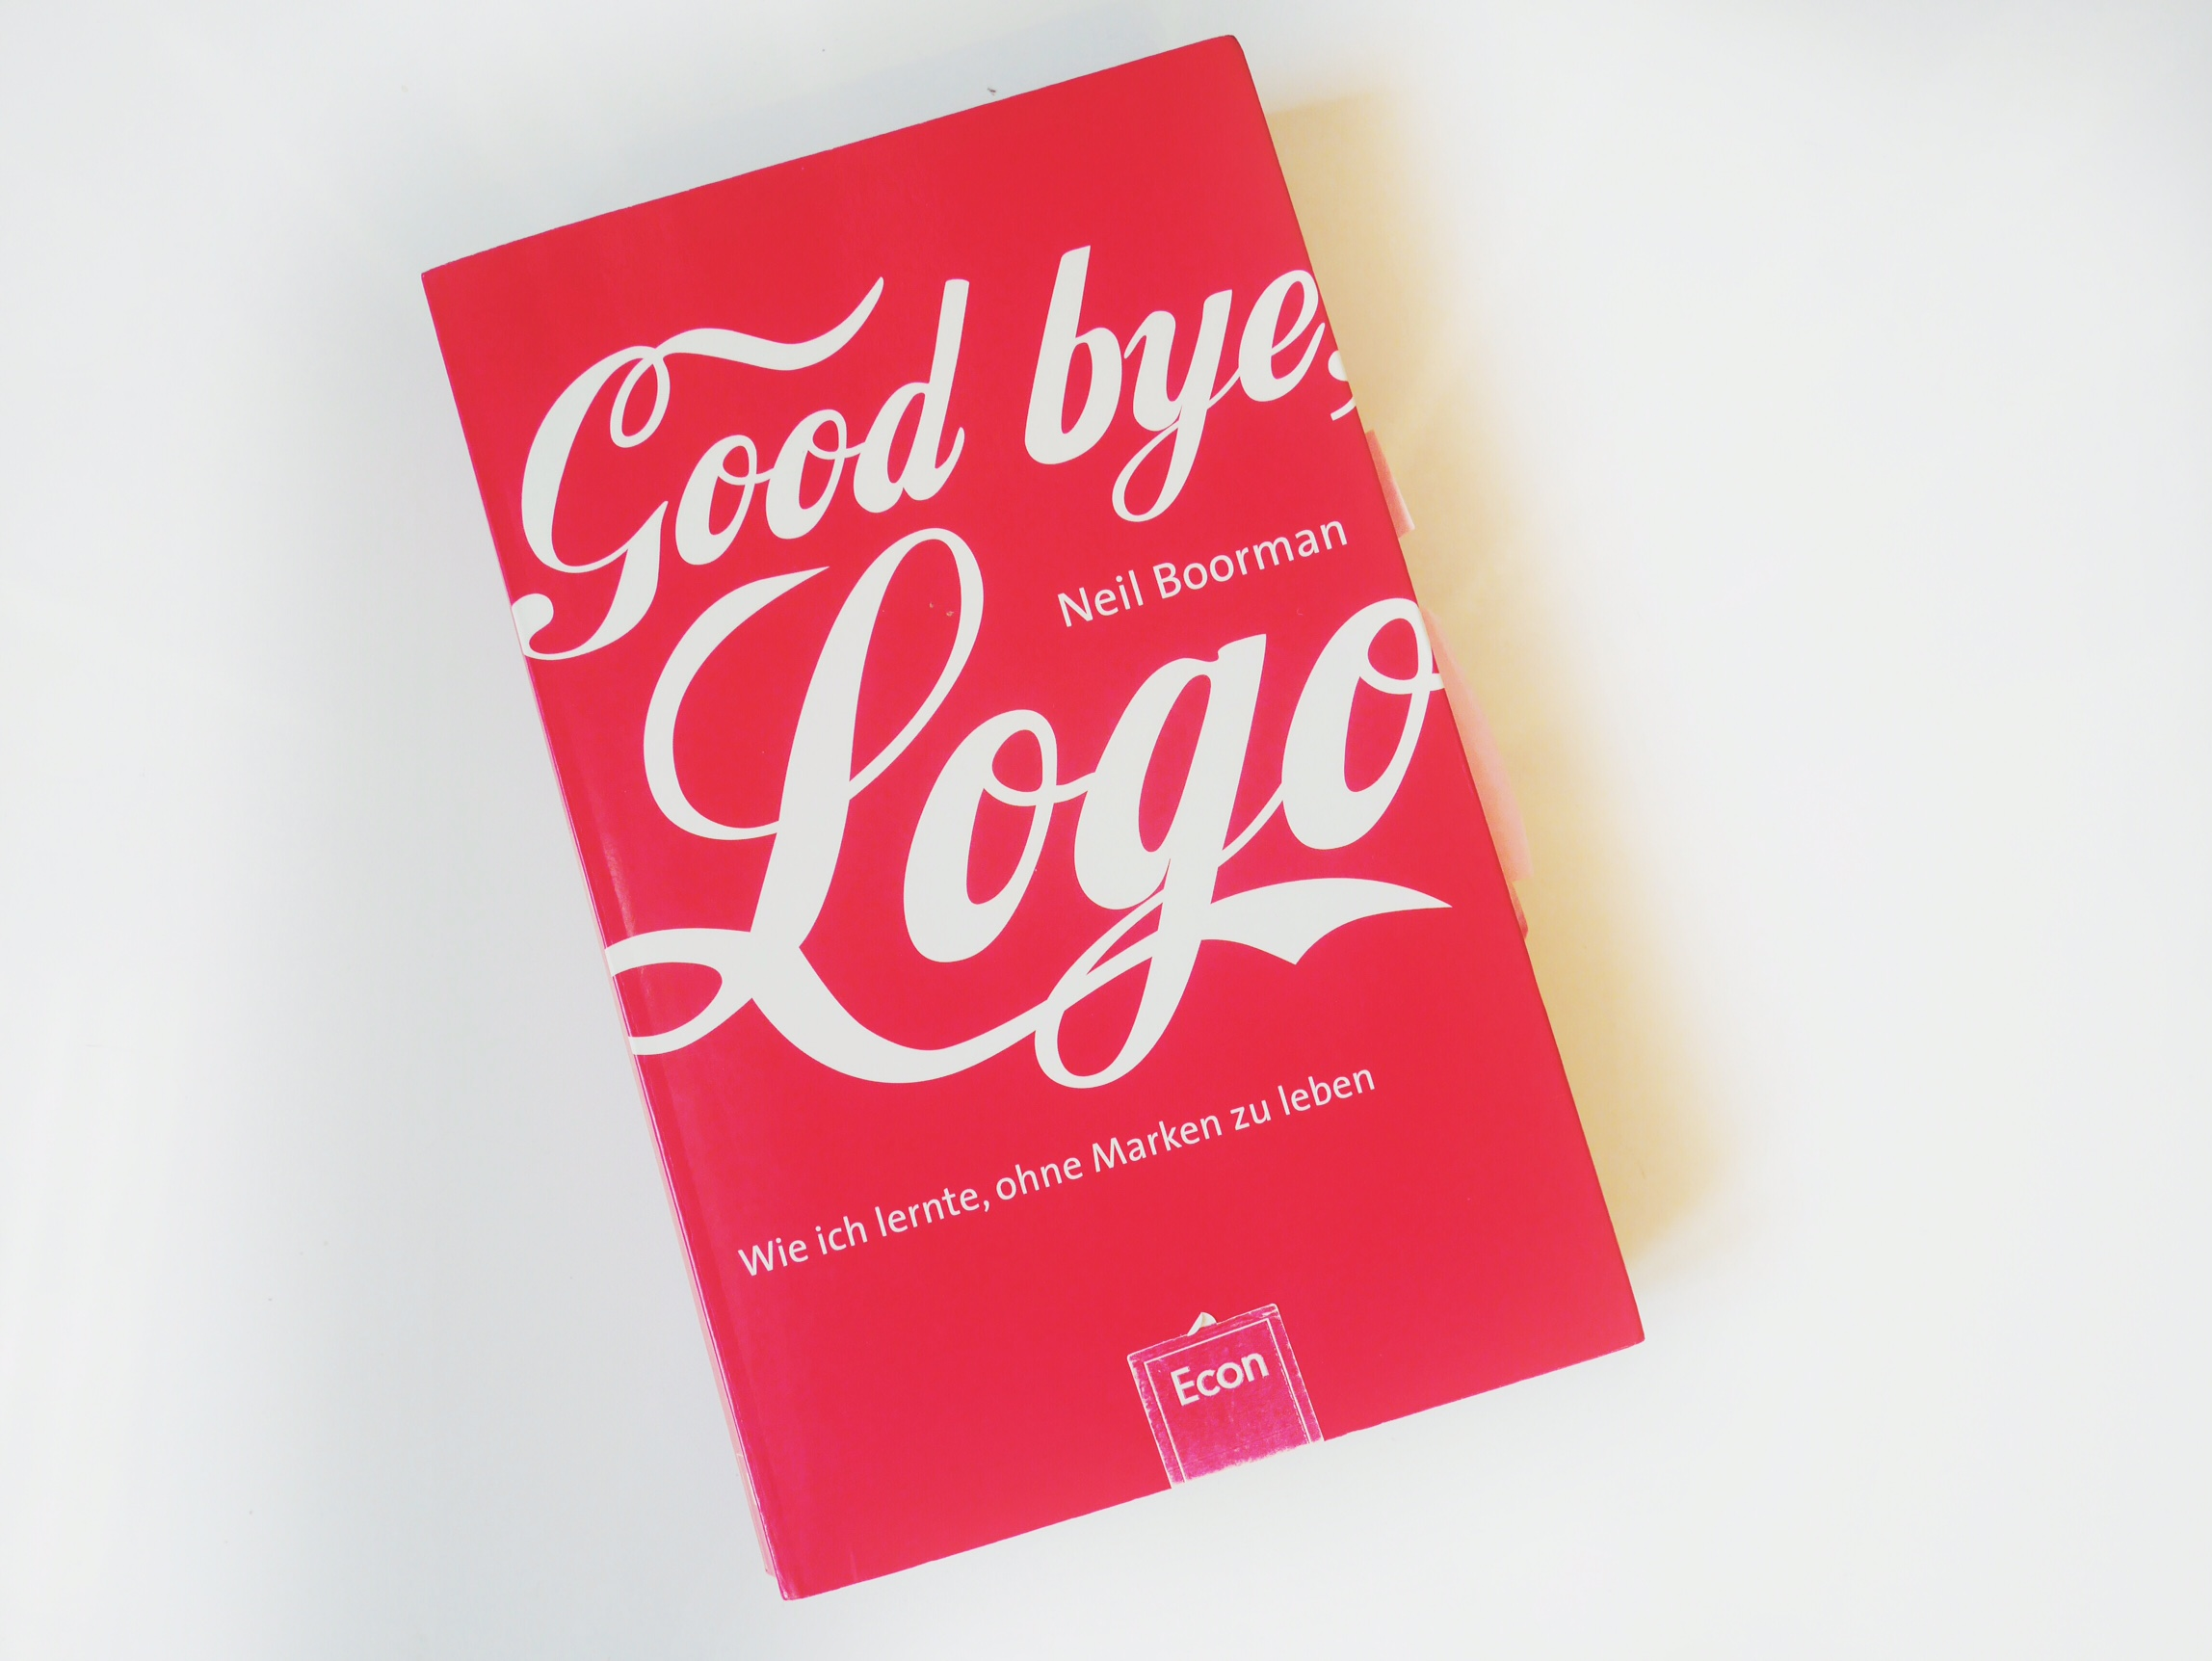 Good bye, Logo